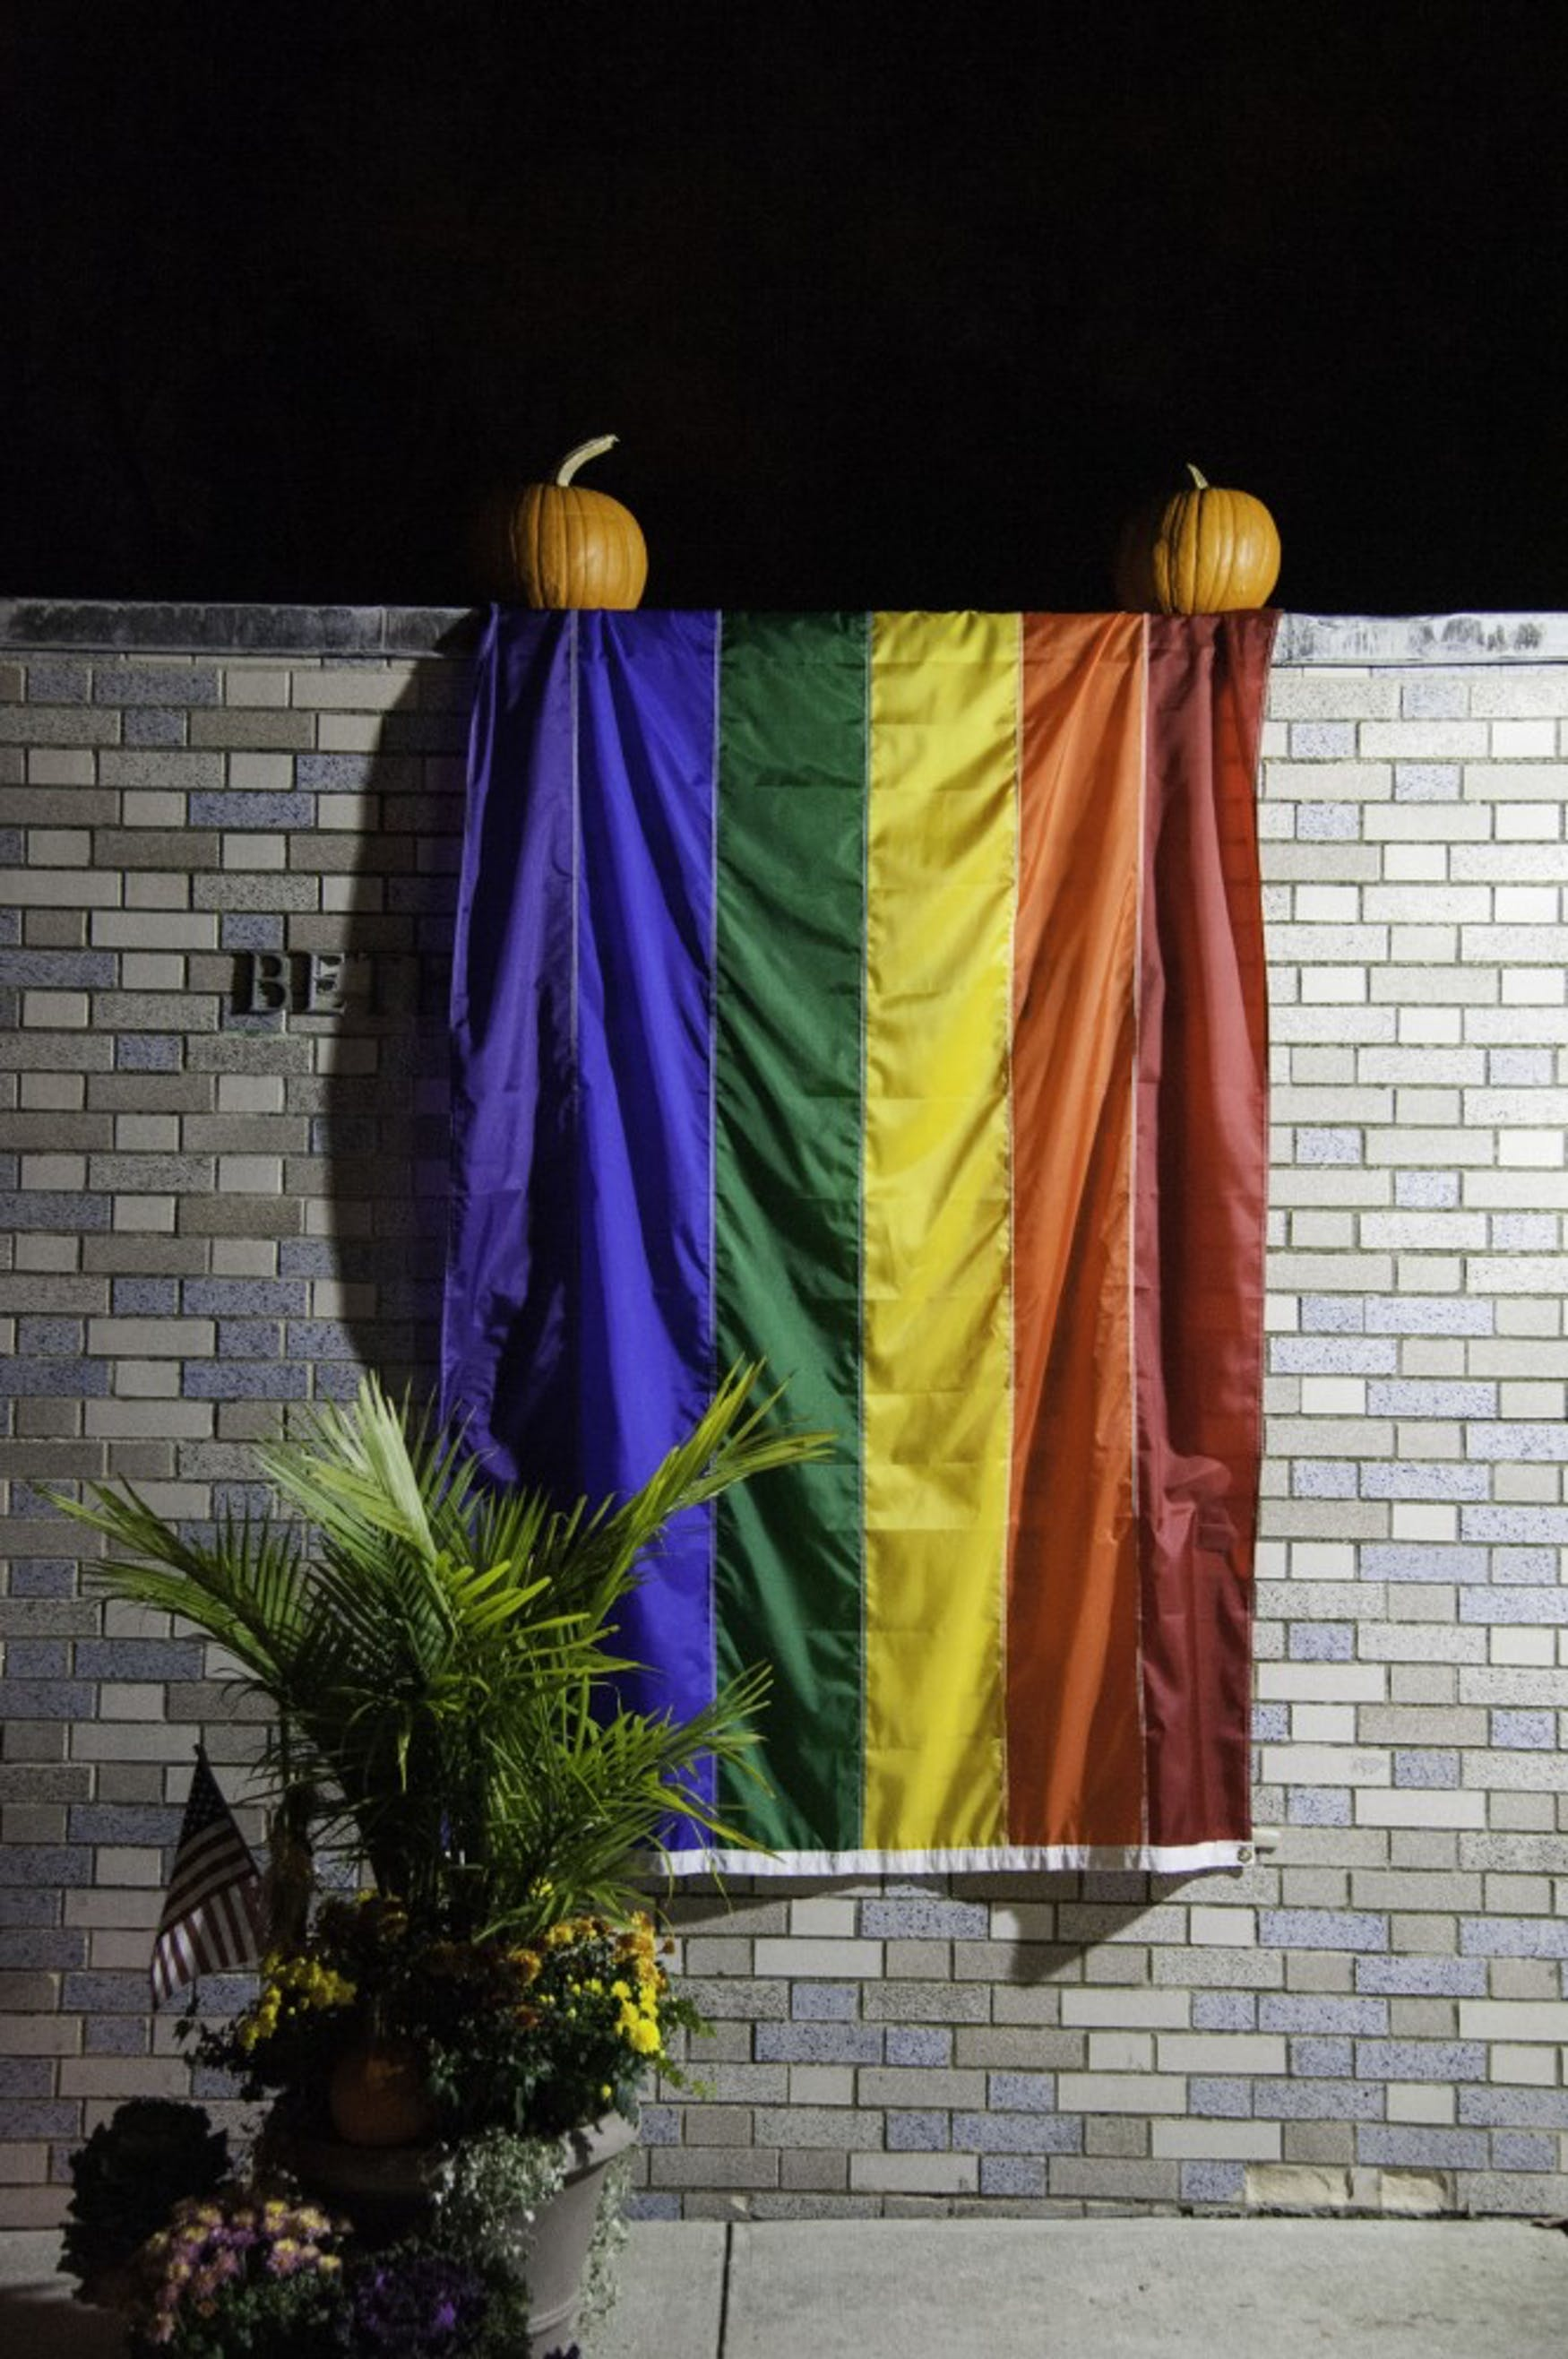 A flag hangs on the Catholic chapel for LGBTQ History Month.